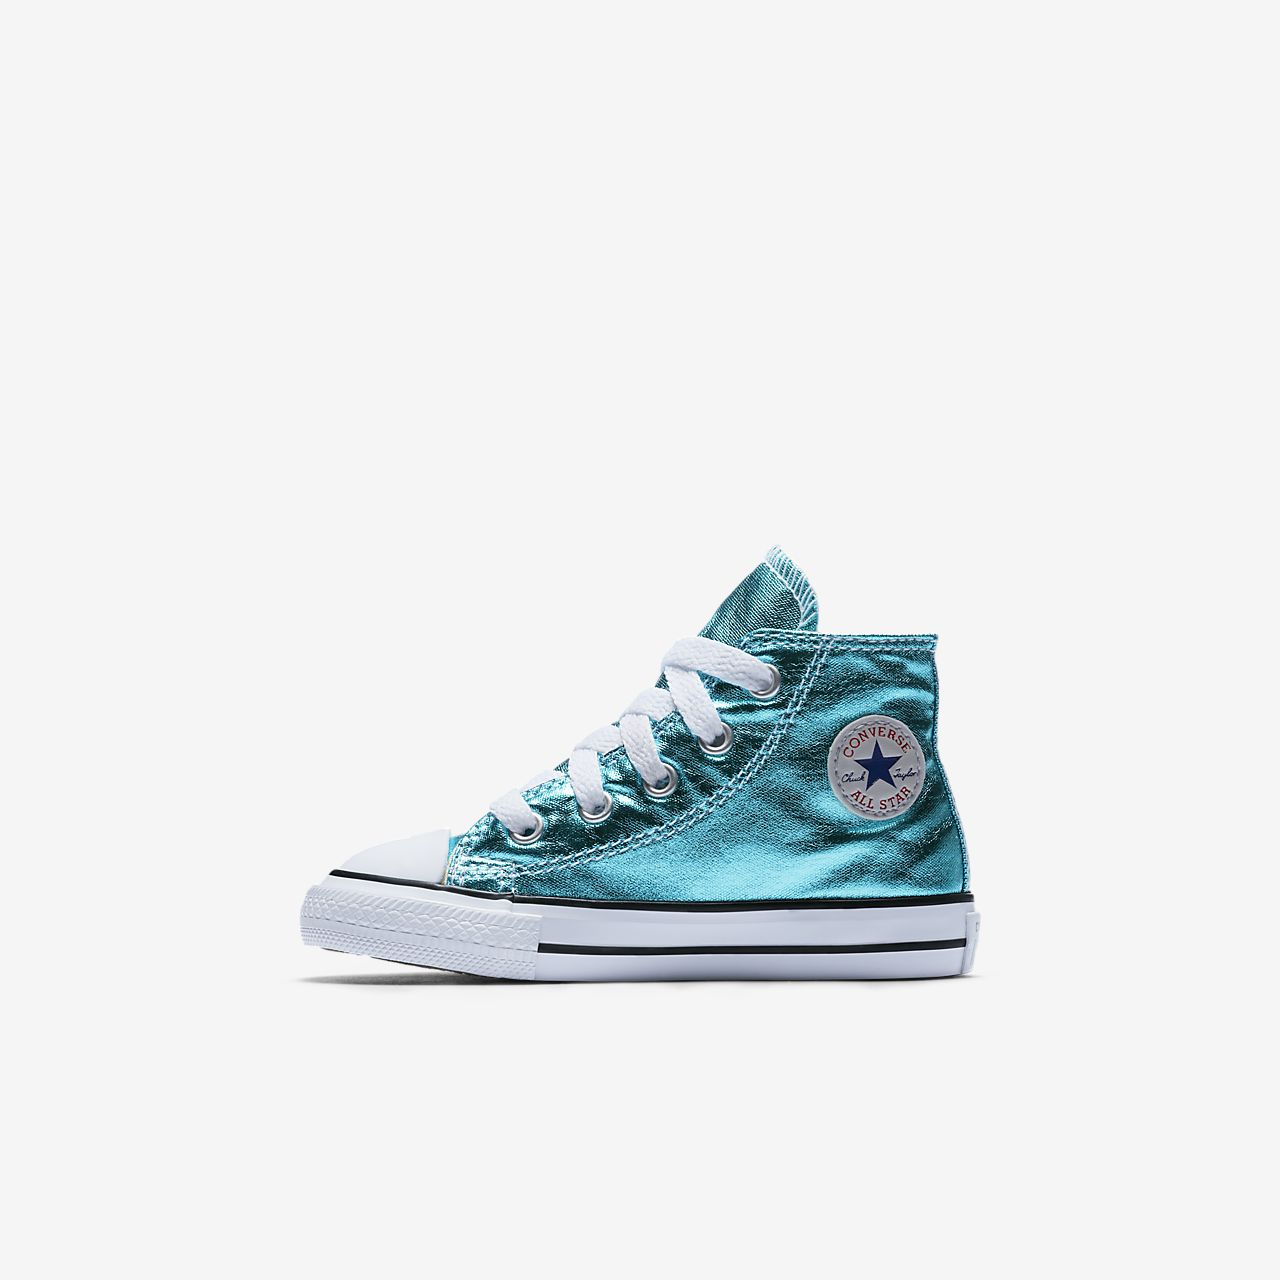 converse shoes high tops for girls. converse chuck taylor all star metallic high top infant/toddler shoe shoes tops for girls